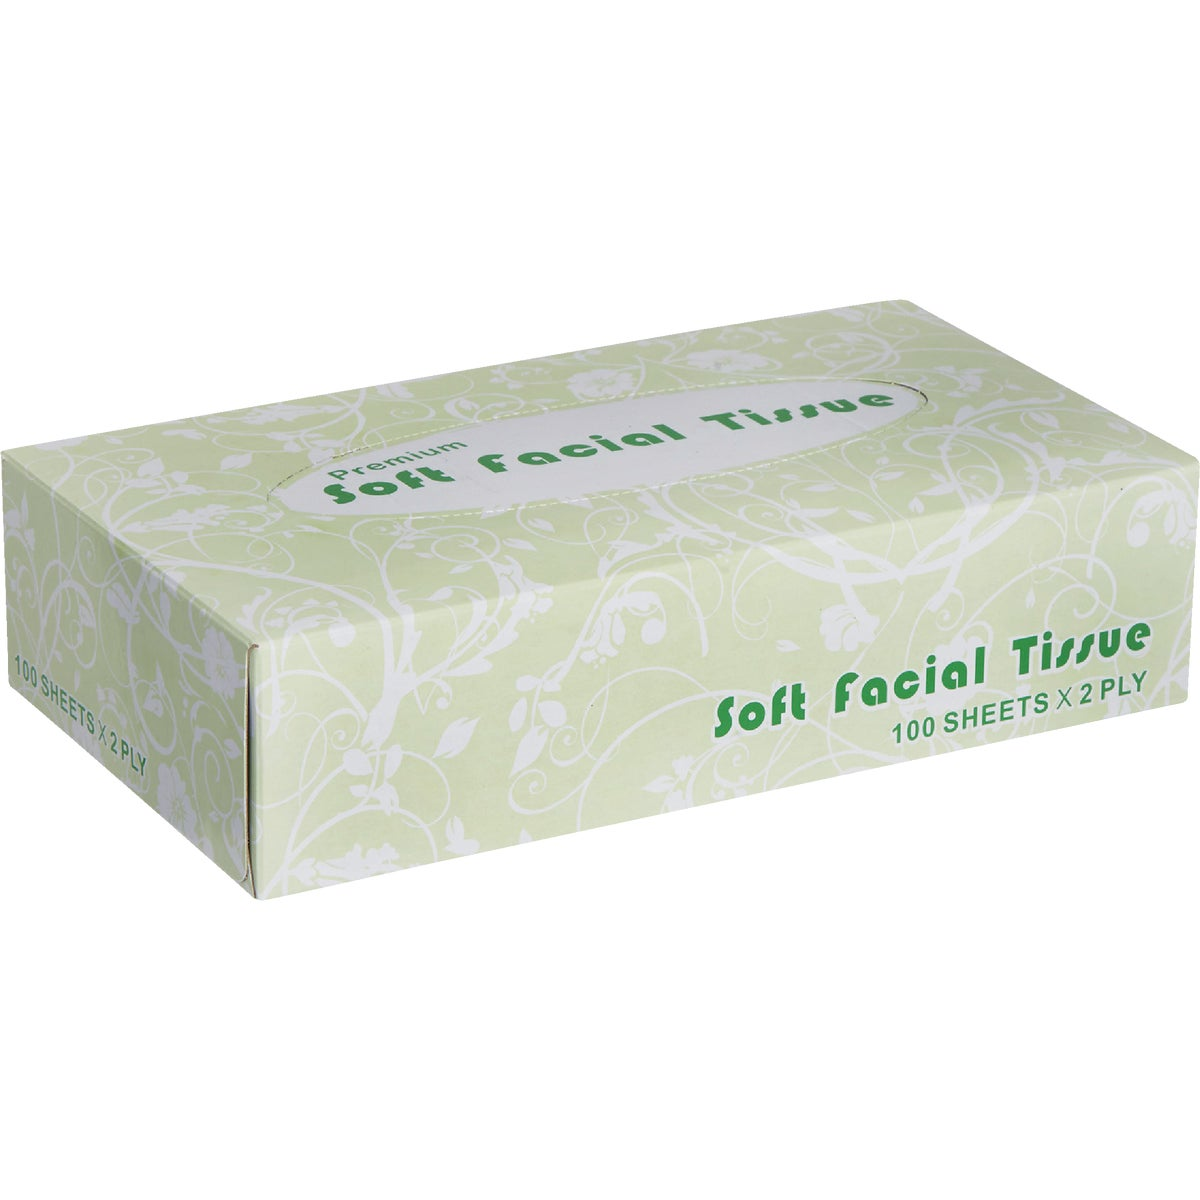 100CT WIND FACIAL TISSUE - WIN2360 by Lagassesweet  Incom